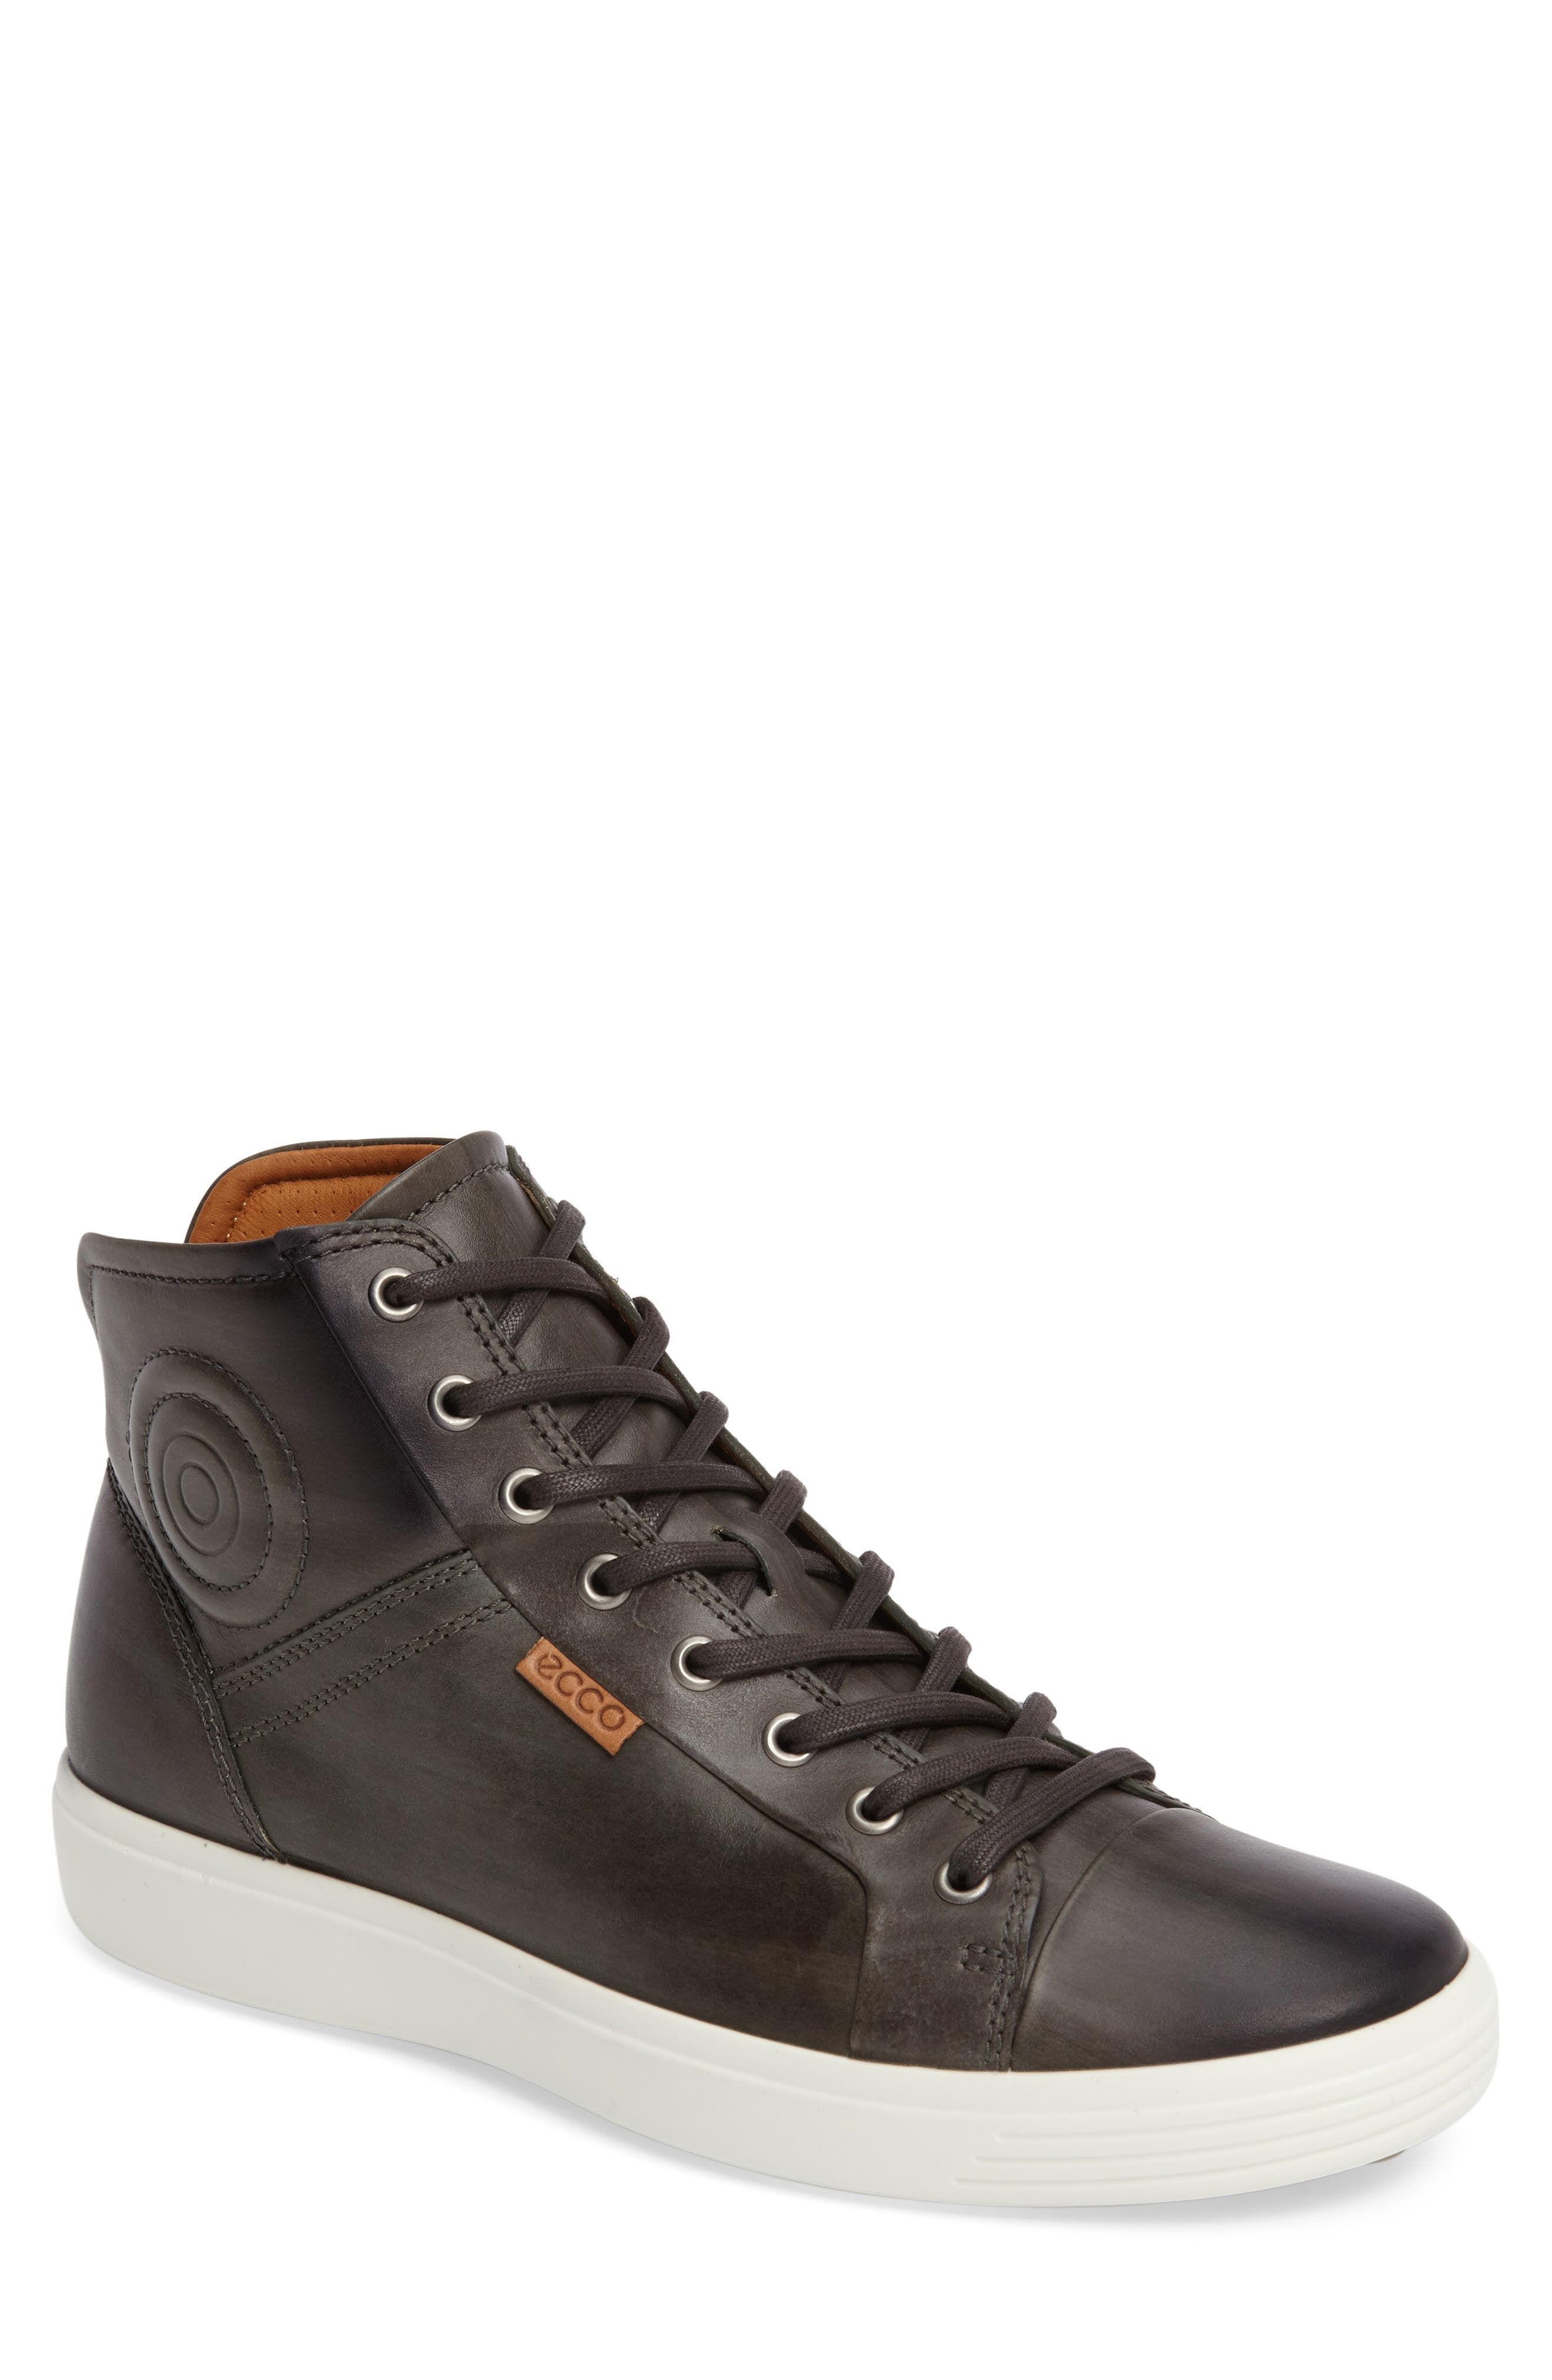 ECCO Soft 7 High Top Sneaker (Men)